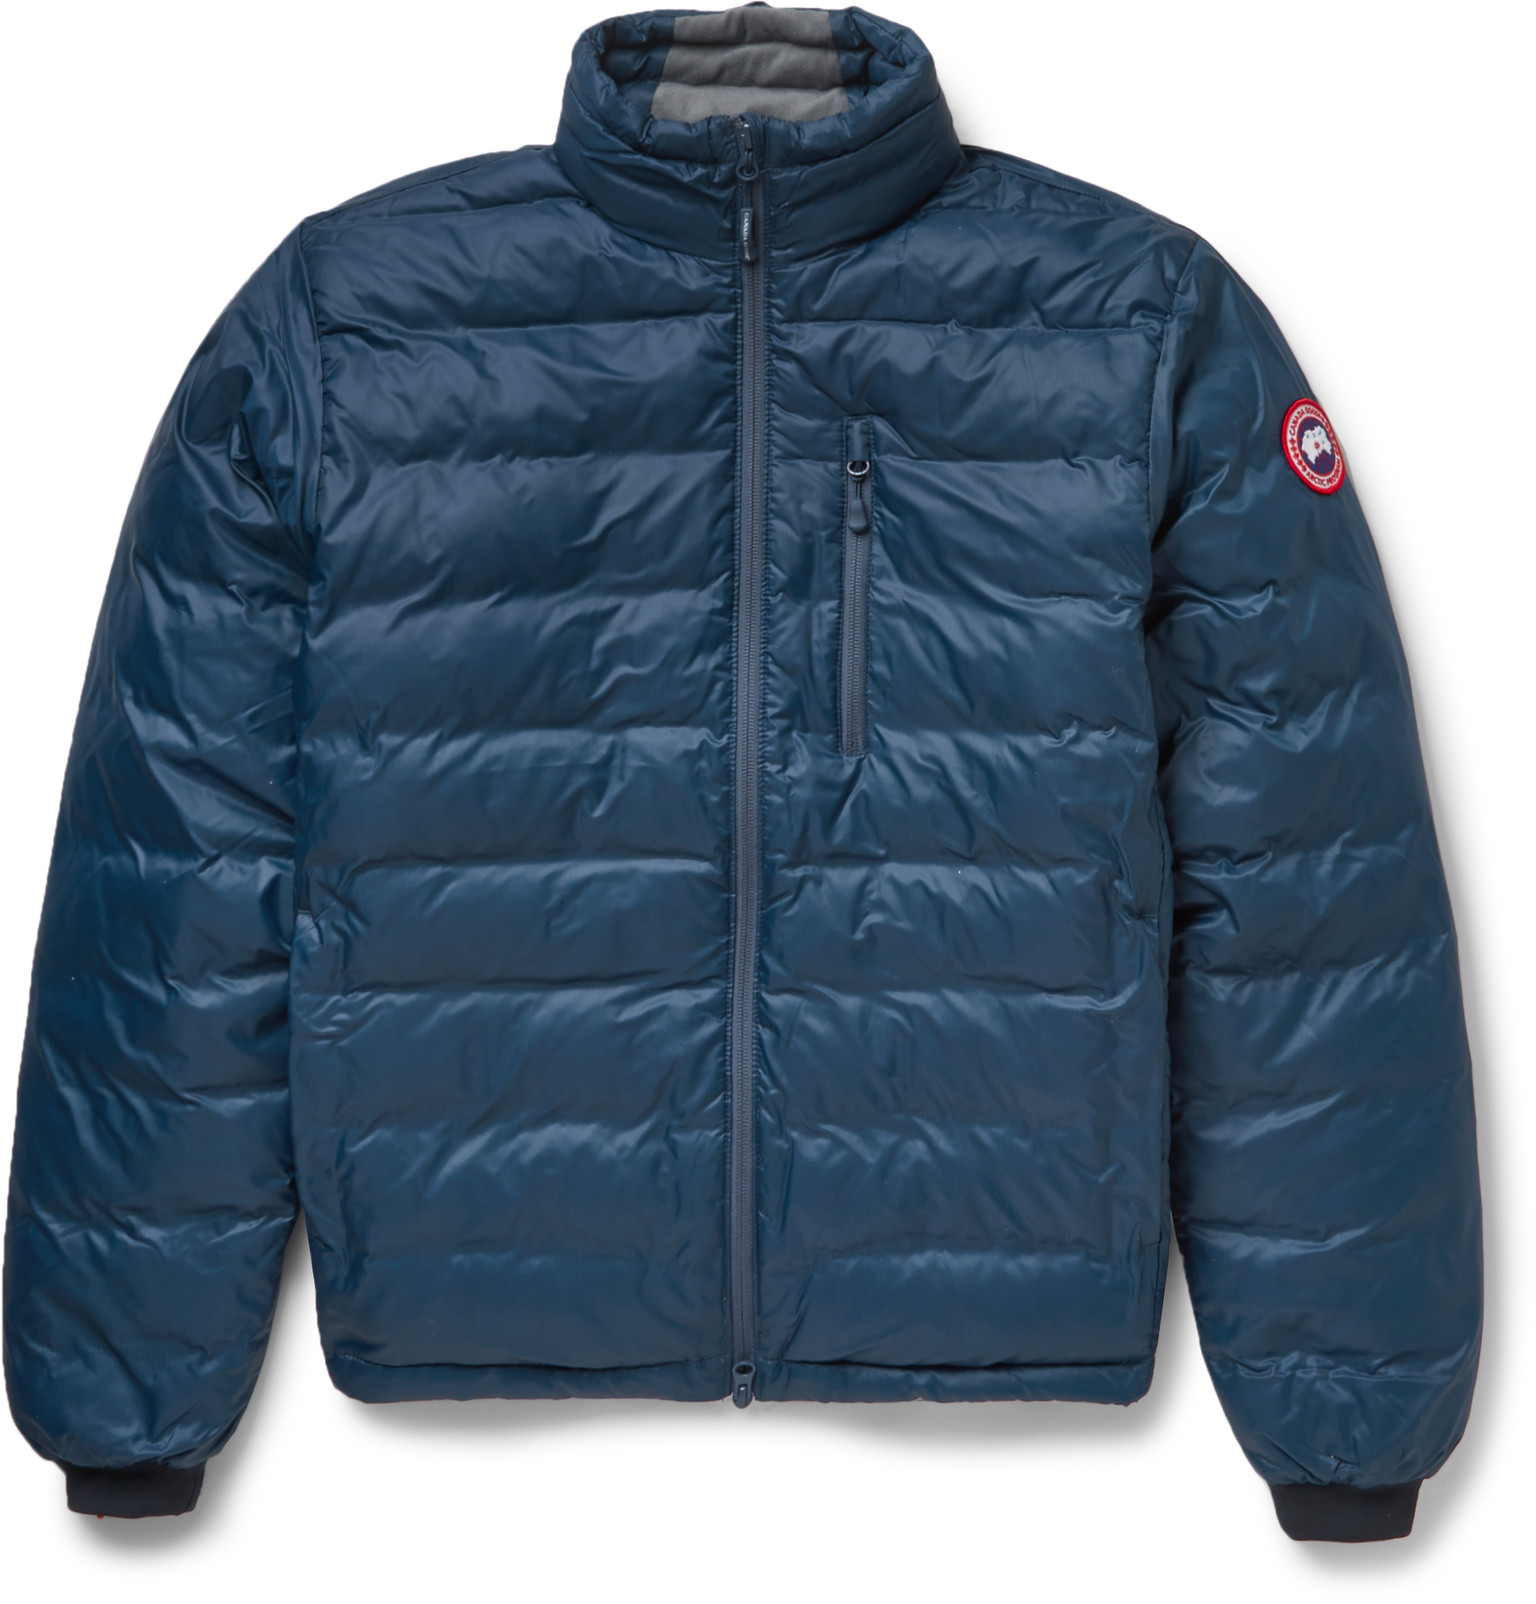 Men's Designer Down jackets - Shop Men's Fashion Online at MR PORTER